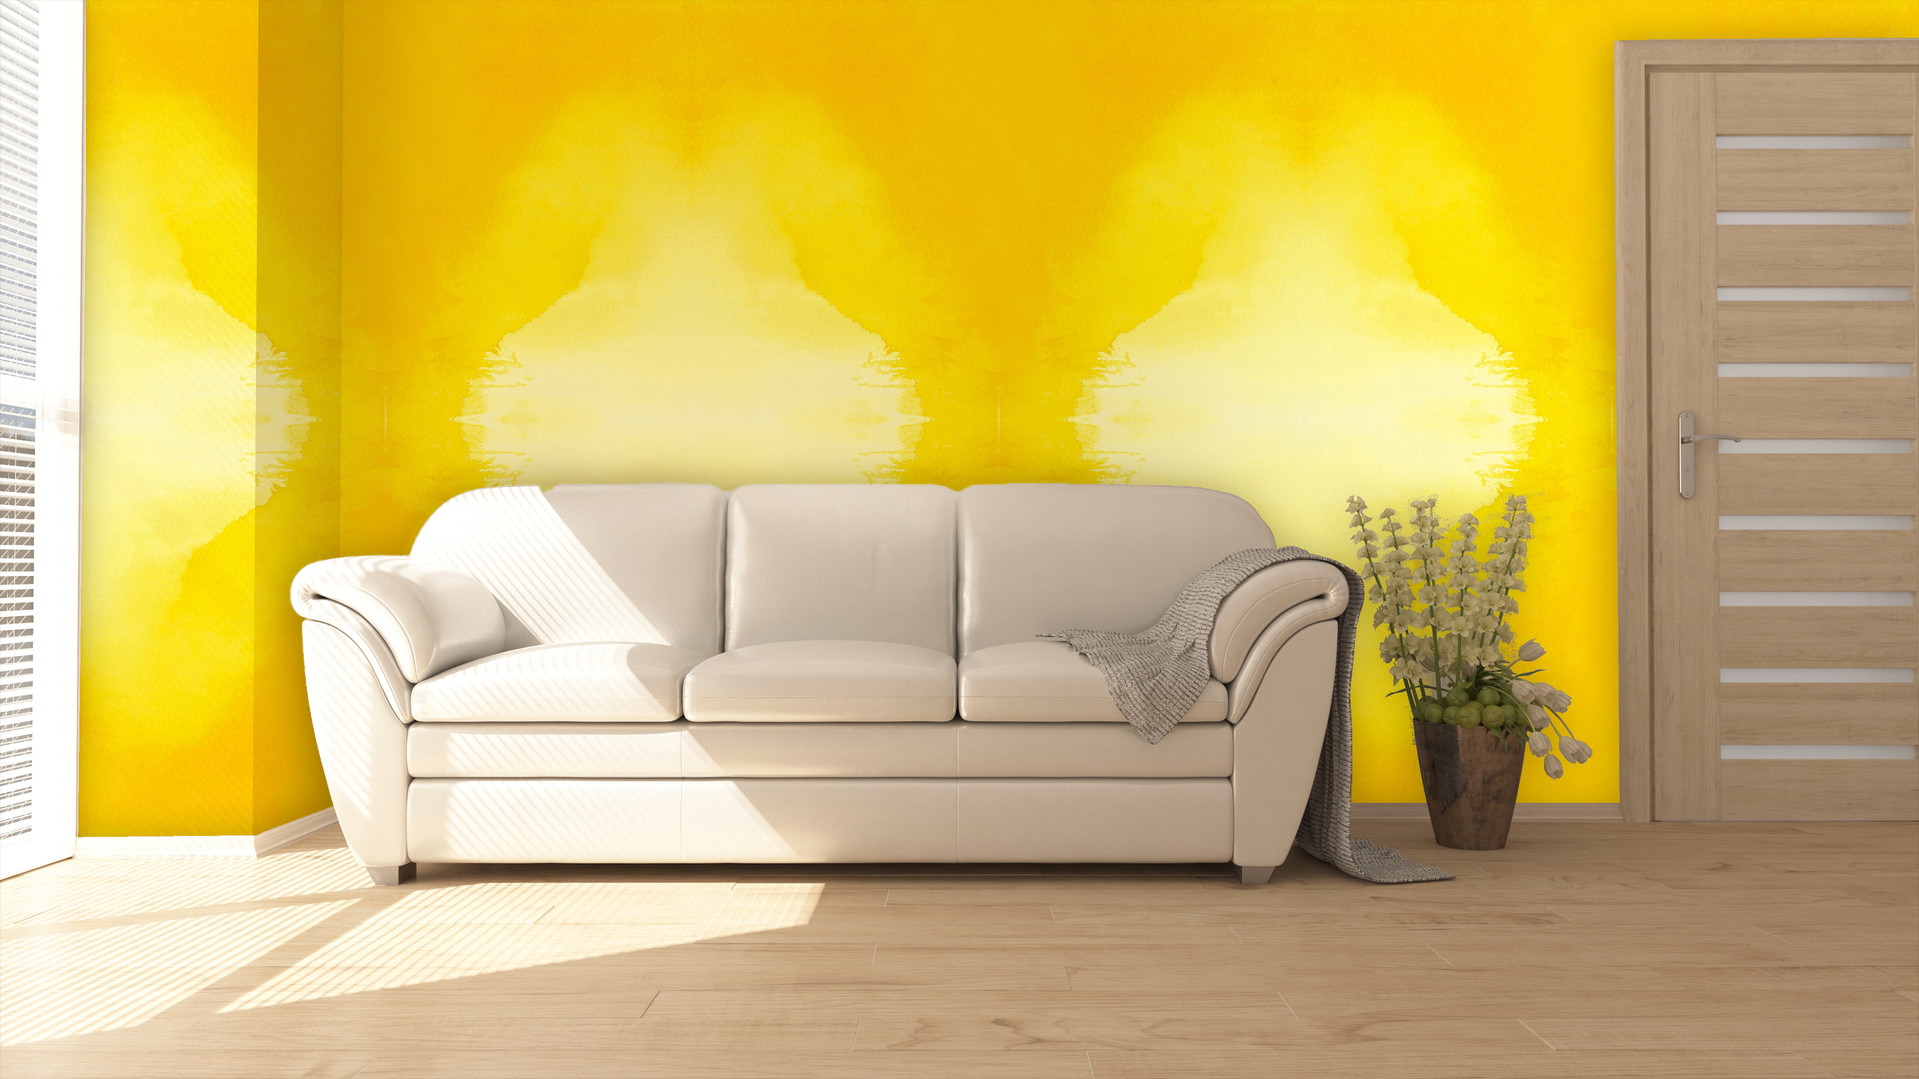 watercolors_yellow_room.jpg